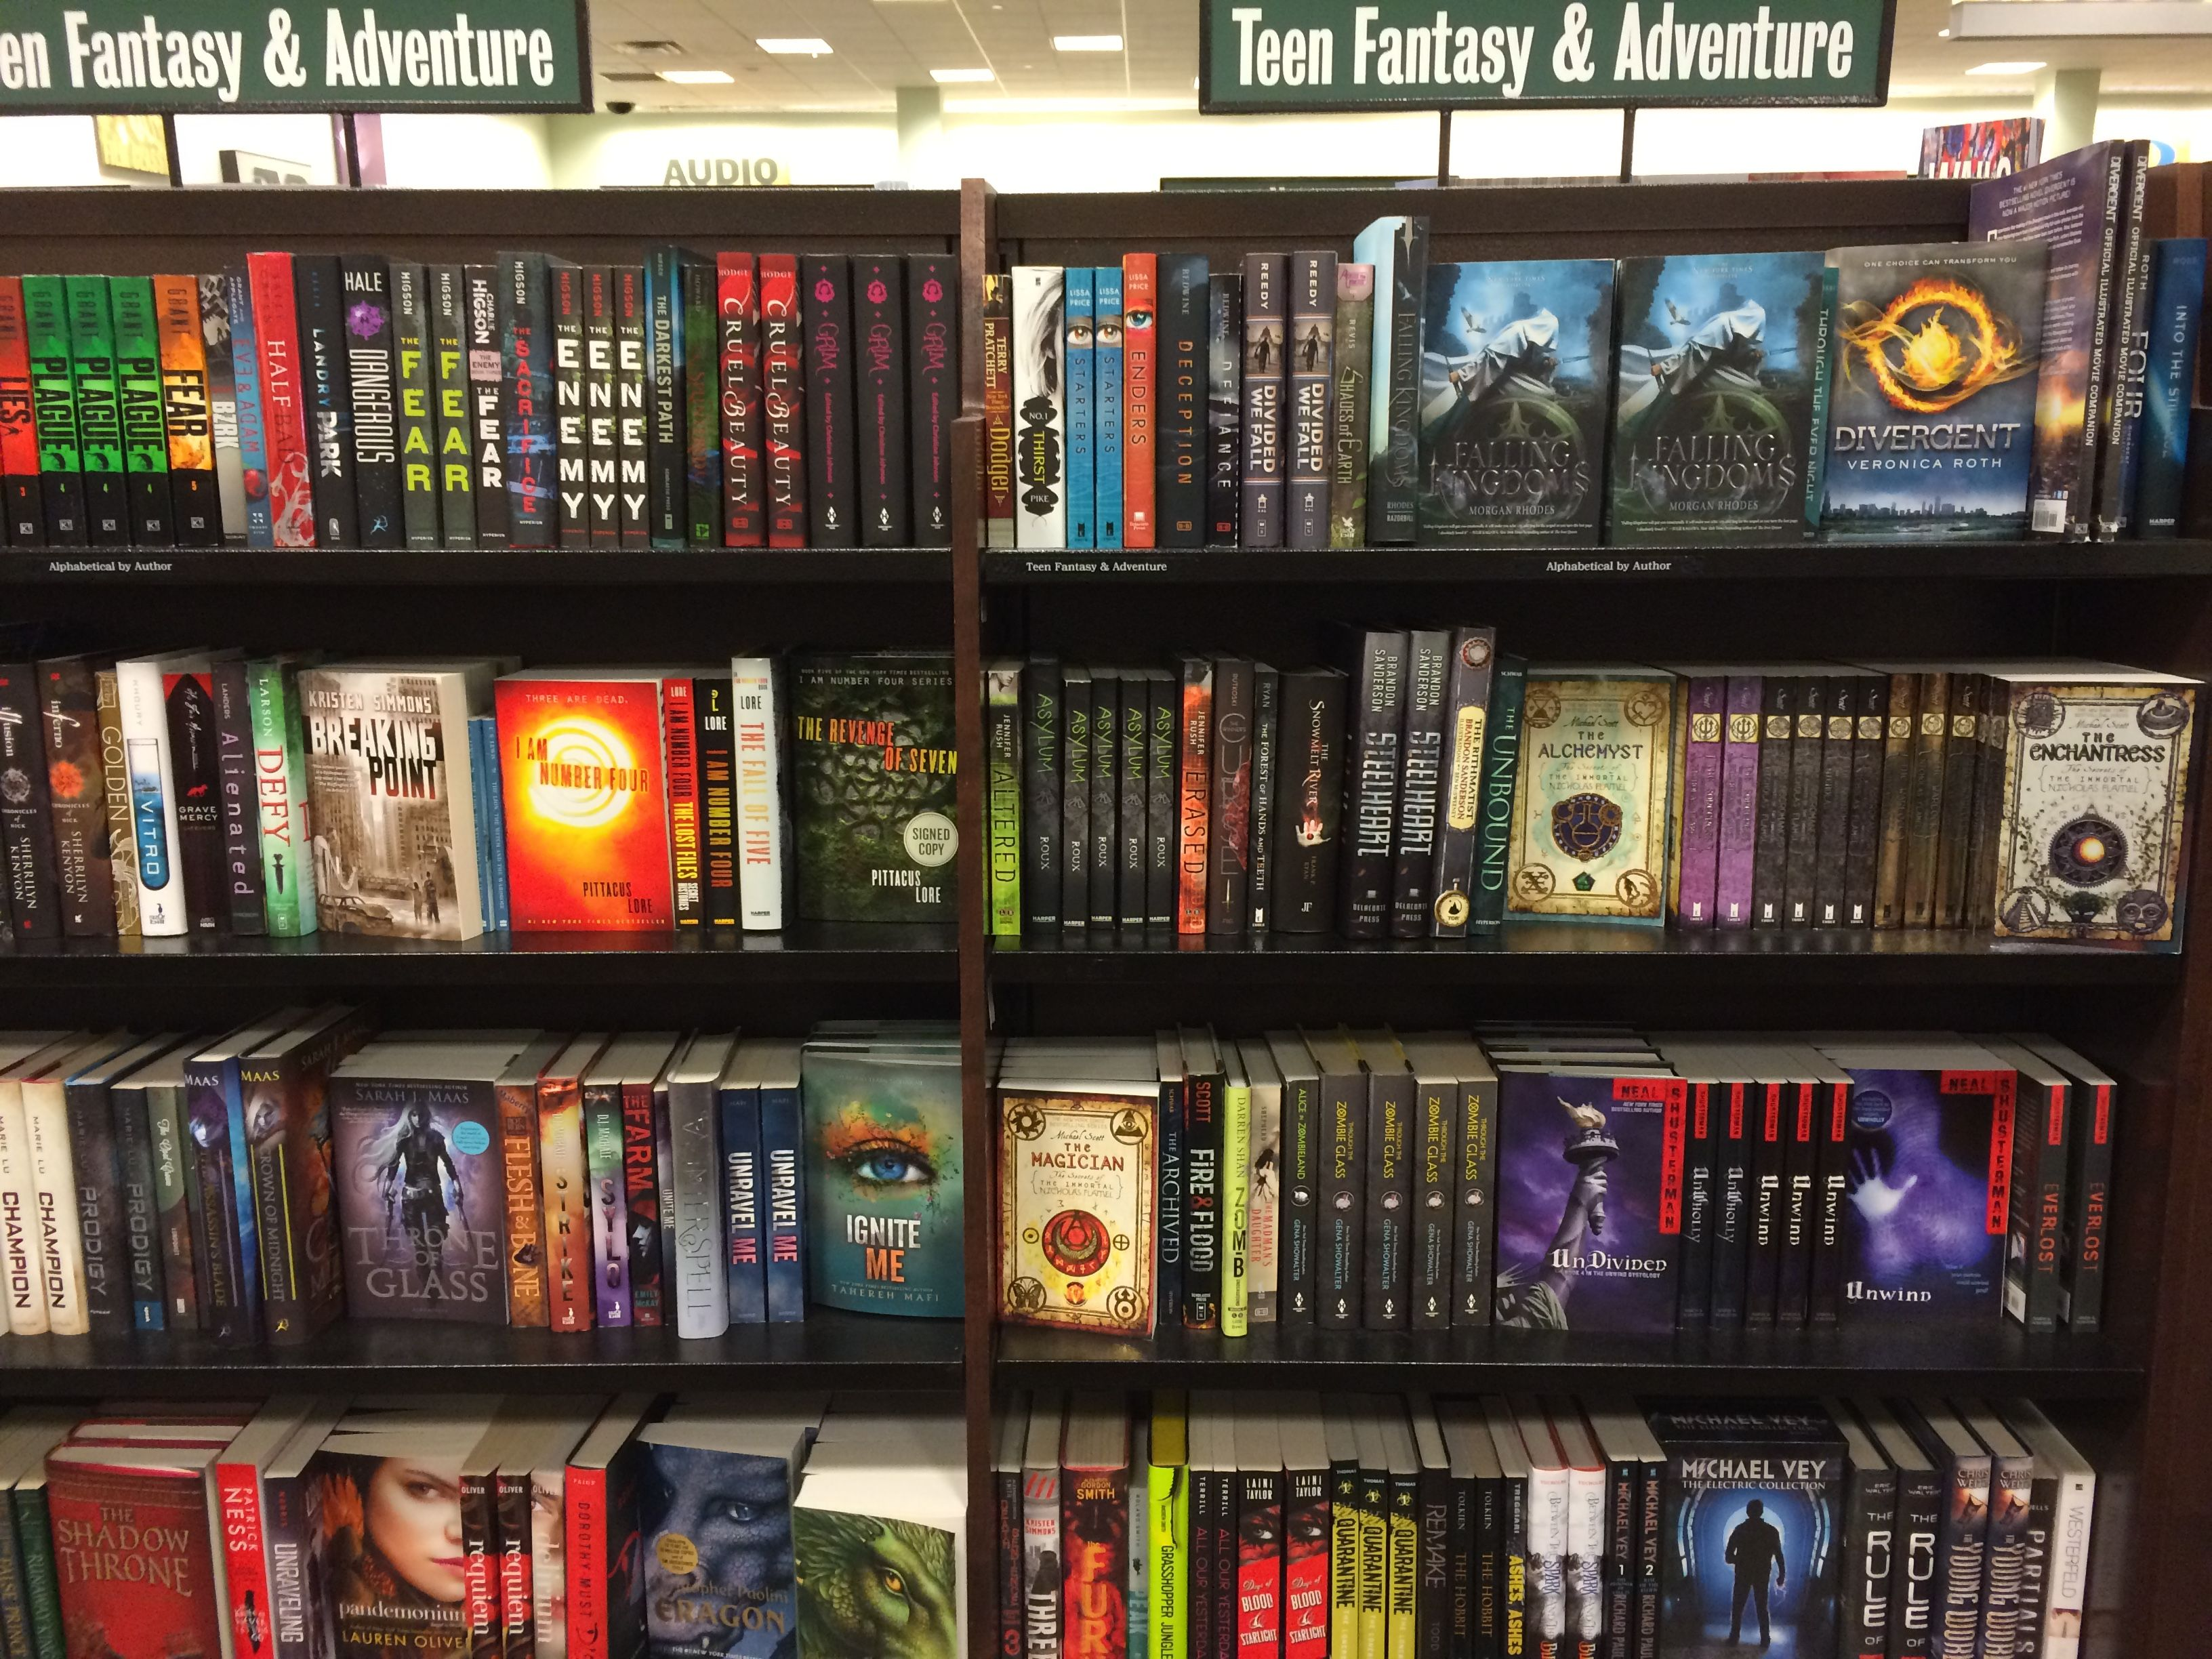 Teen Sci Fi book covers at Barnes Noble